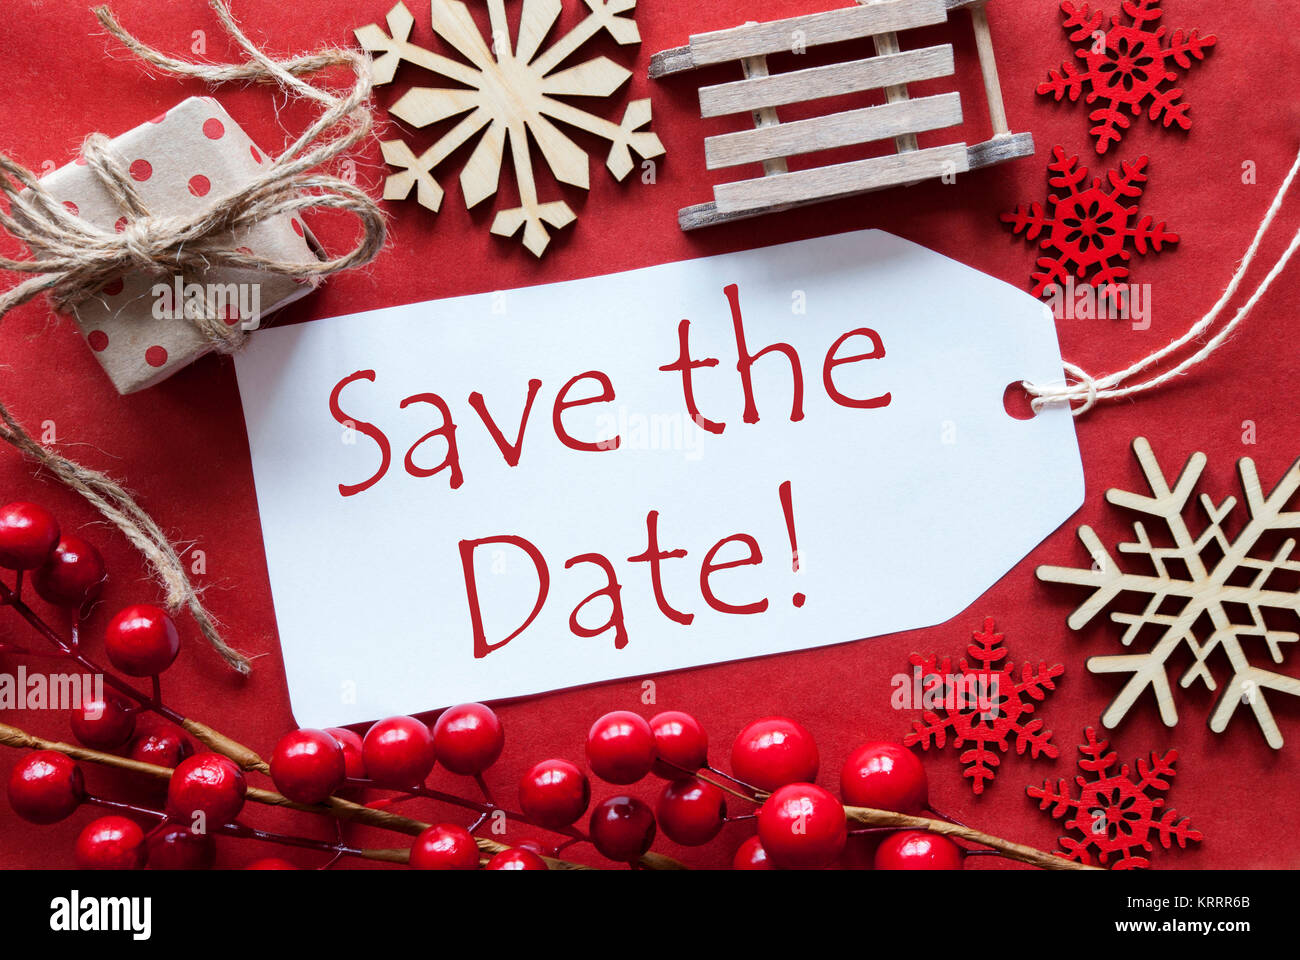 English Text Save The Date. Christmas Decoration Like Gift Or Stock ...